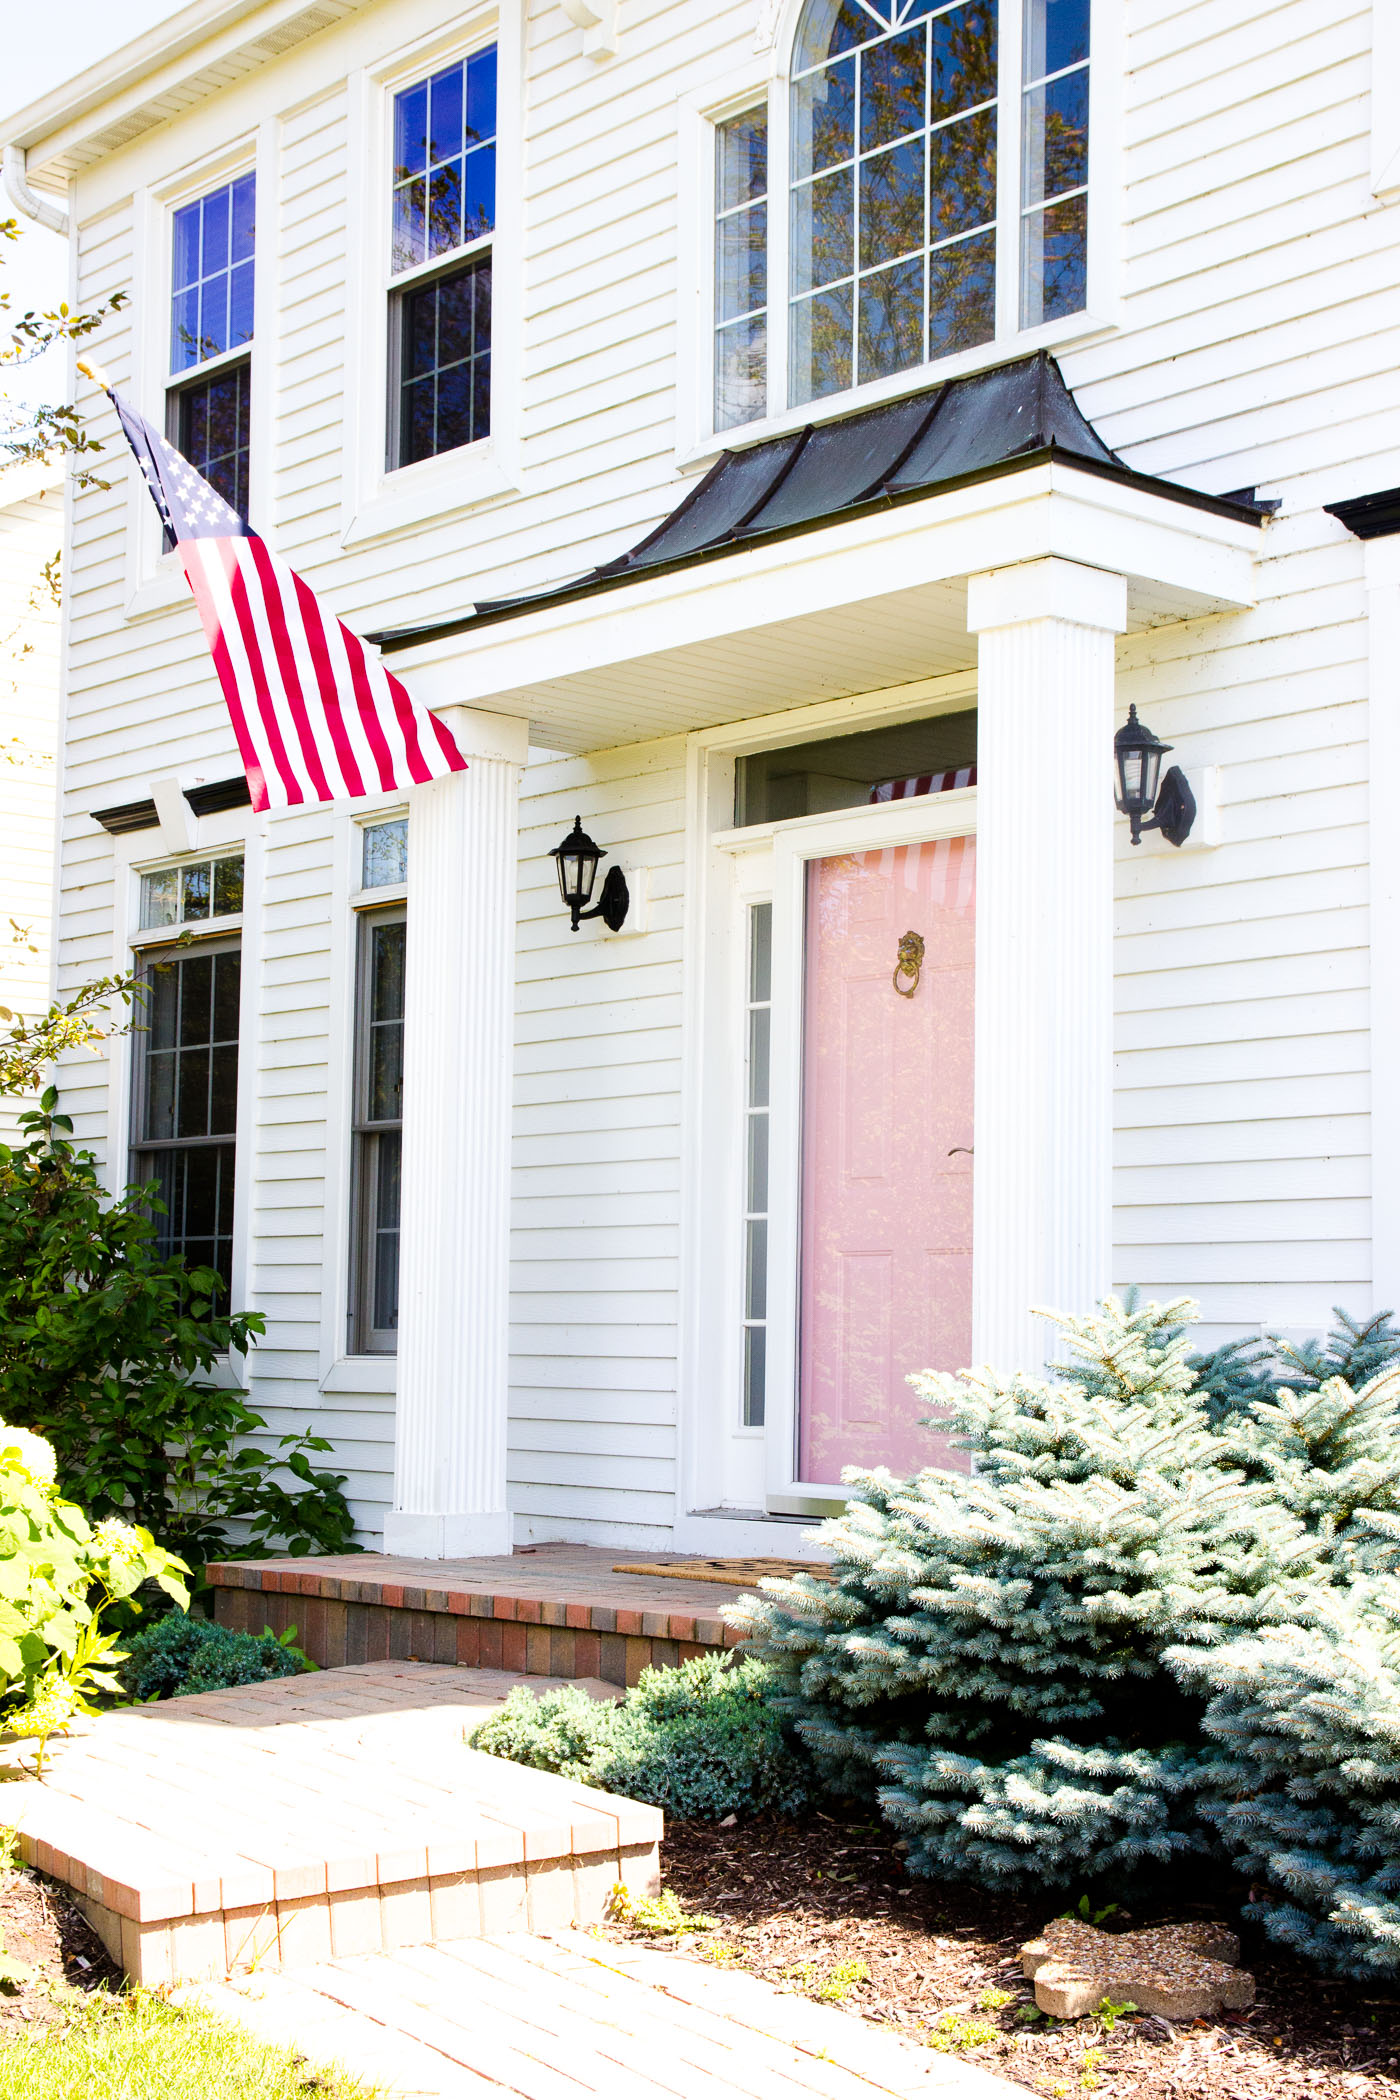 I love every time I pull up to our house and see our beautiful pink door. It just makes me so happy. And that's what a home should do.